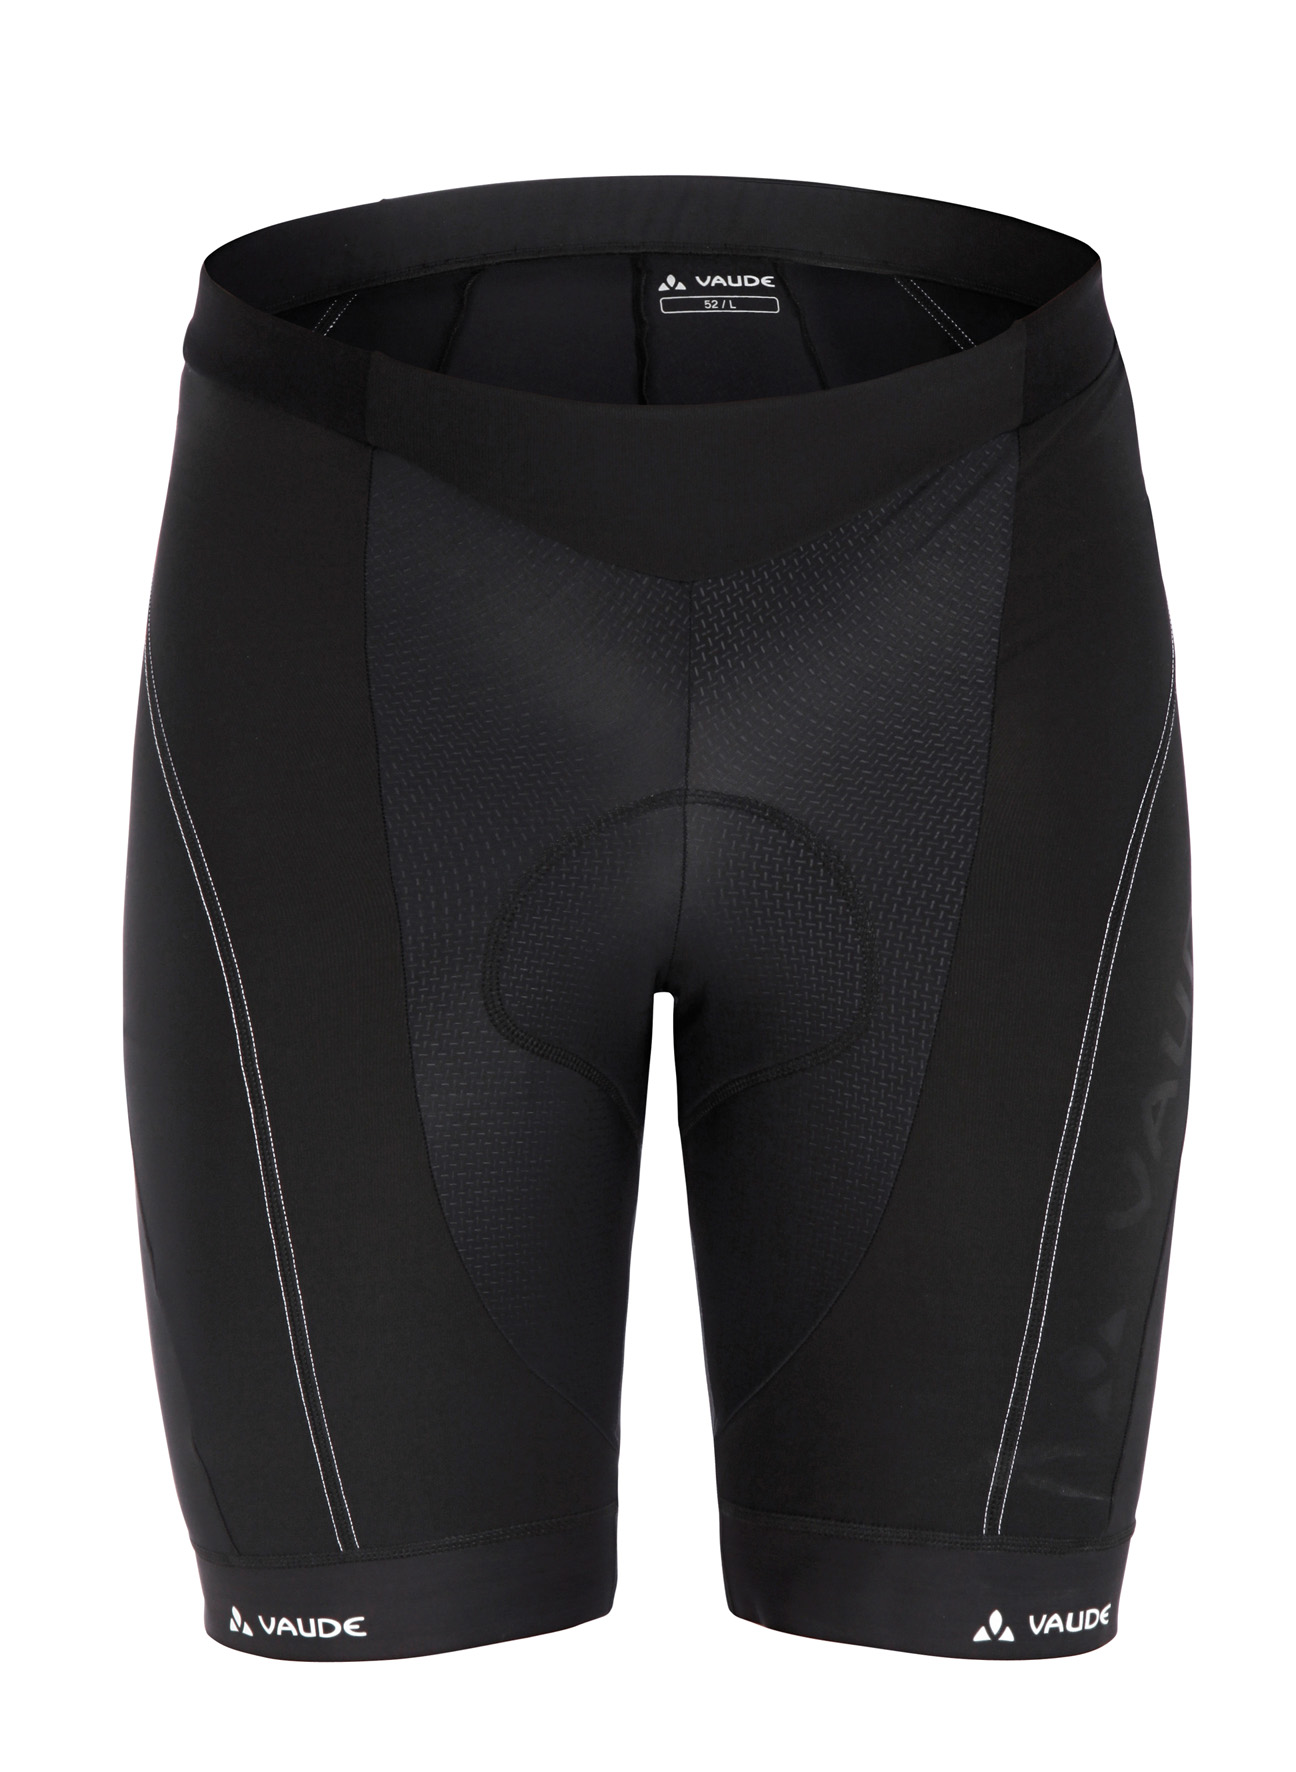 VAUDE Men´s Pro Pants black Größe L - schneider-sports